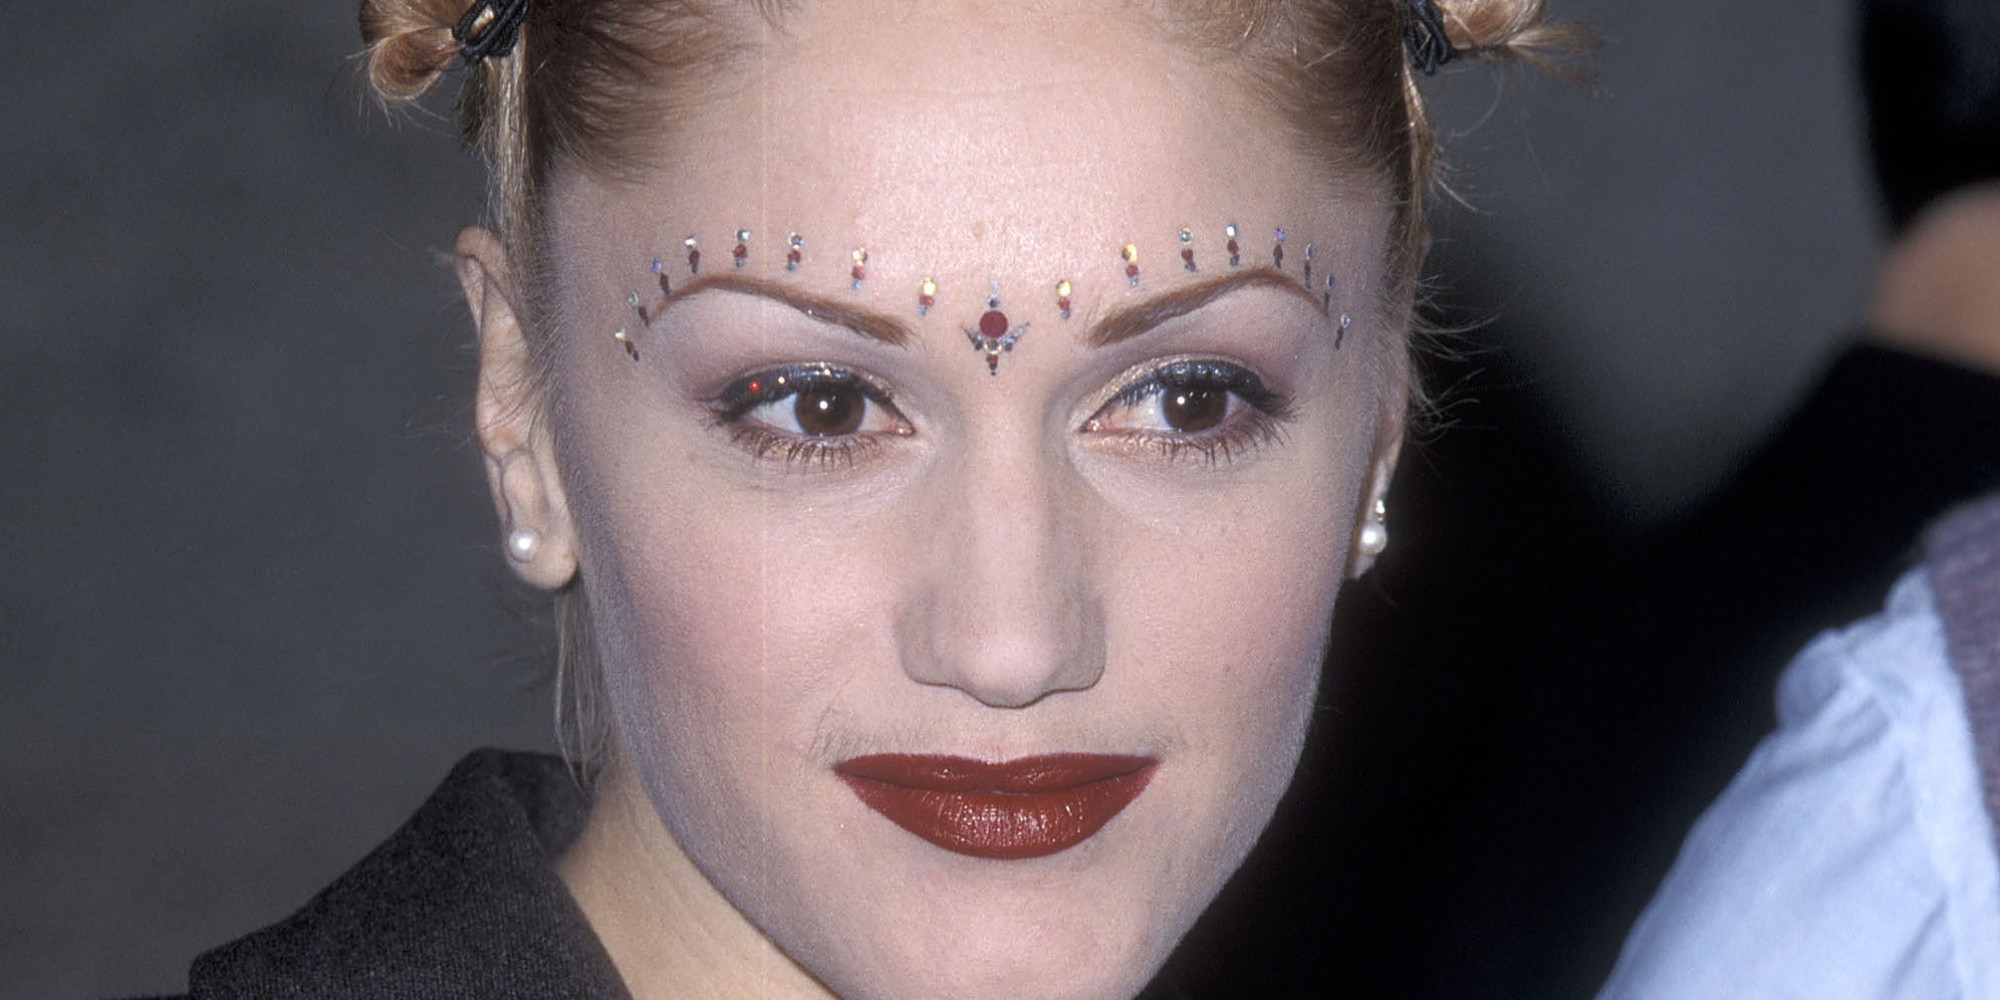 Indulge In Your '90s Nostalgia With These Lipstick Looks ...